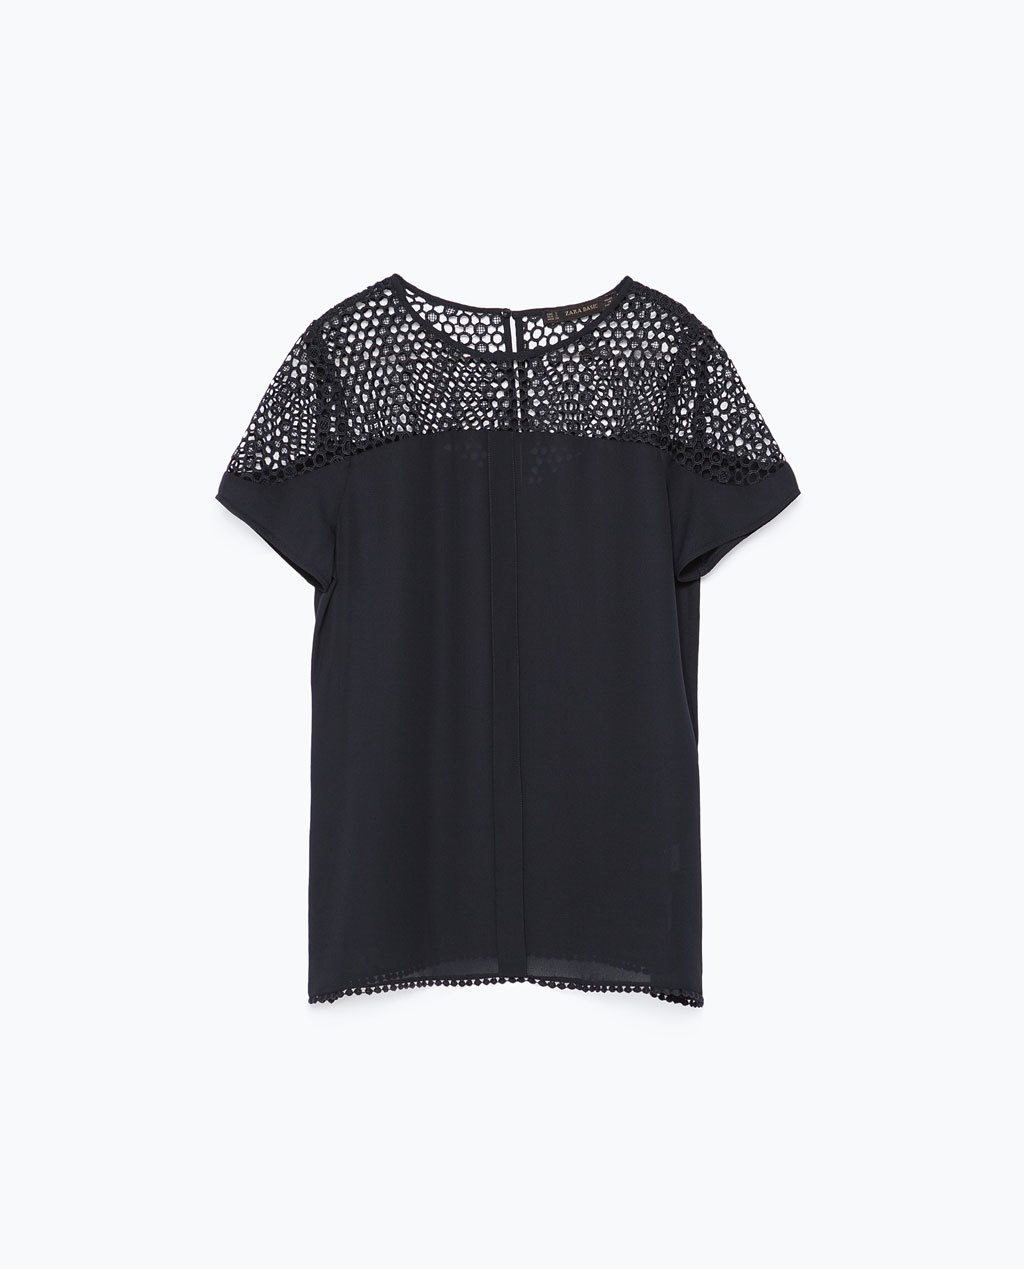 Guipure Lace Top - pattern: plain; predominant colour: stone; occasions: casual, creative work; length: standard; style: top; fit: straight cut; neckline: crew; sleeve length: short sleeve; sleeve style: standard; texture group: crepes; embellishment: lace; shoulder detail: sheer at shoulder; season: s/s 2015